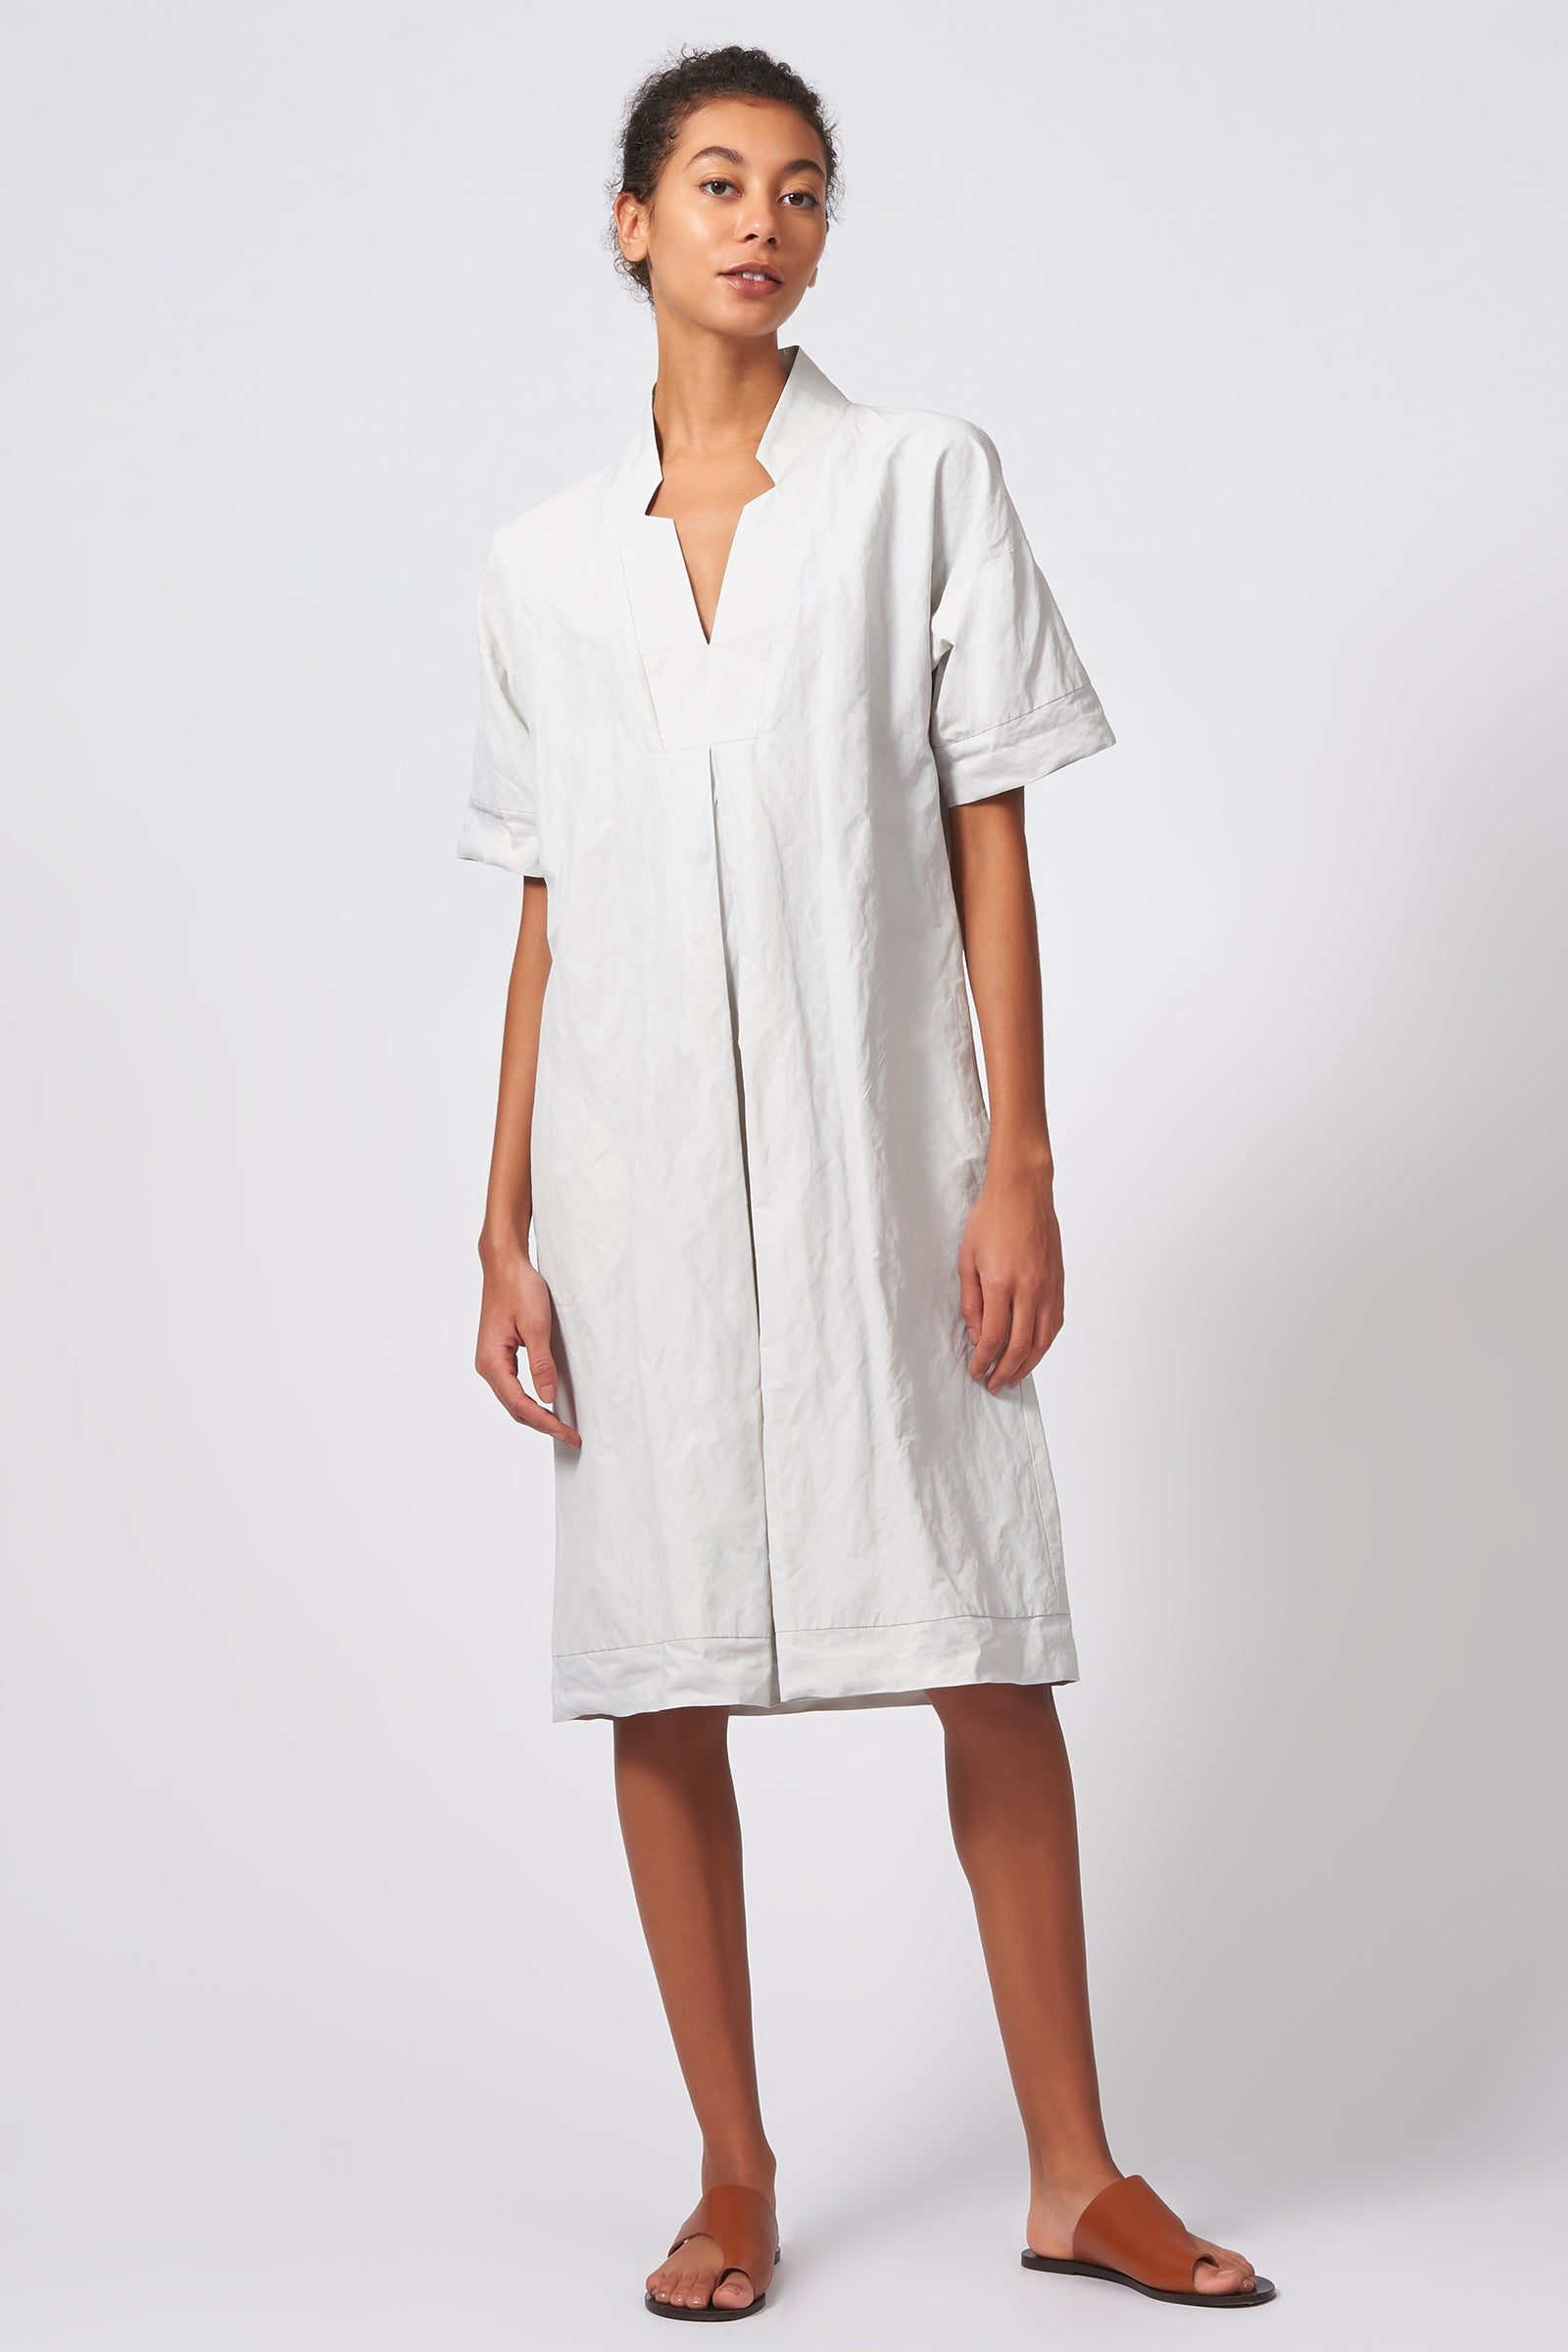 Kal Rieman Notch Placket Dress in Stone Cotton Nylon on Model Full Front View